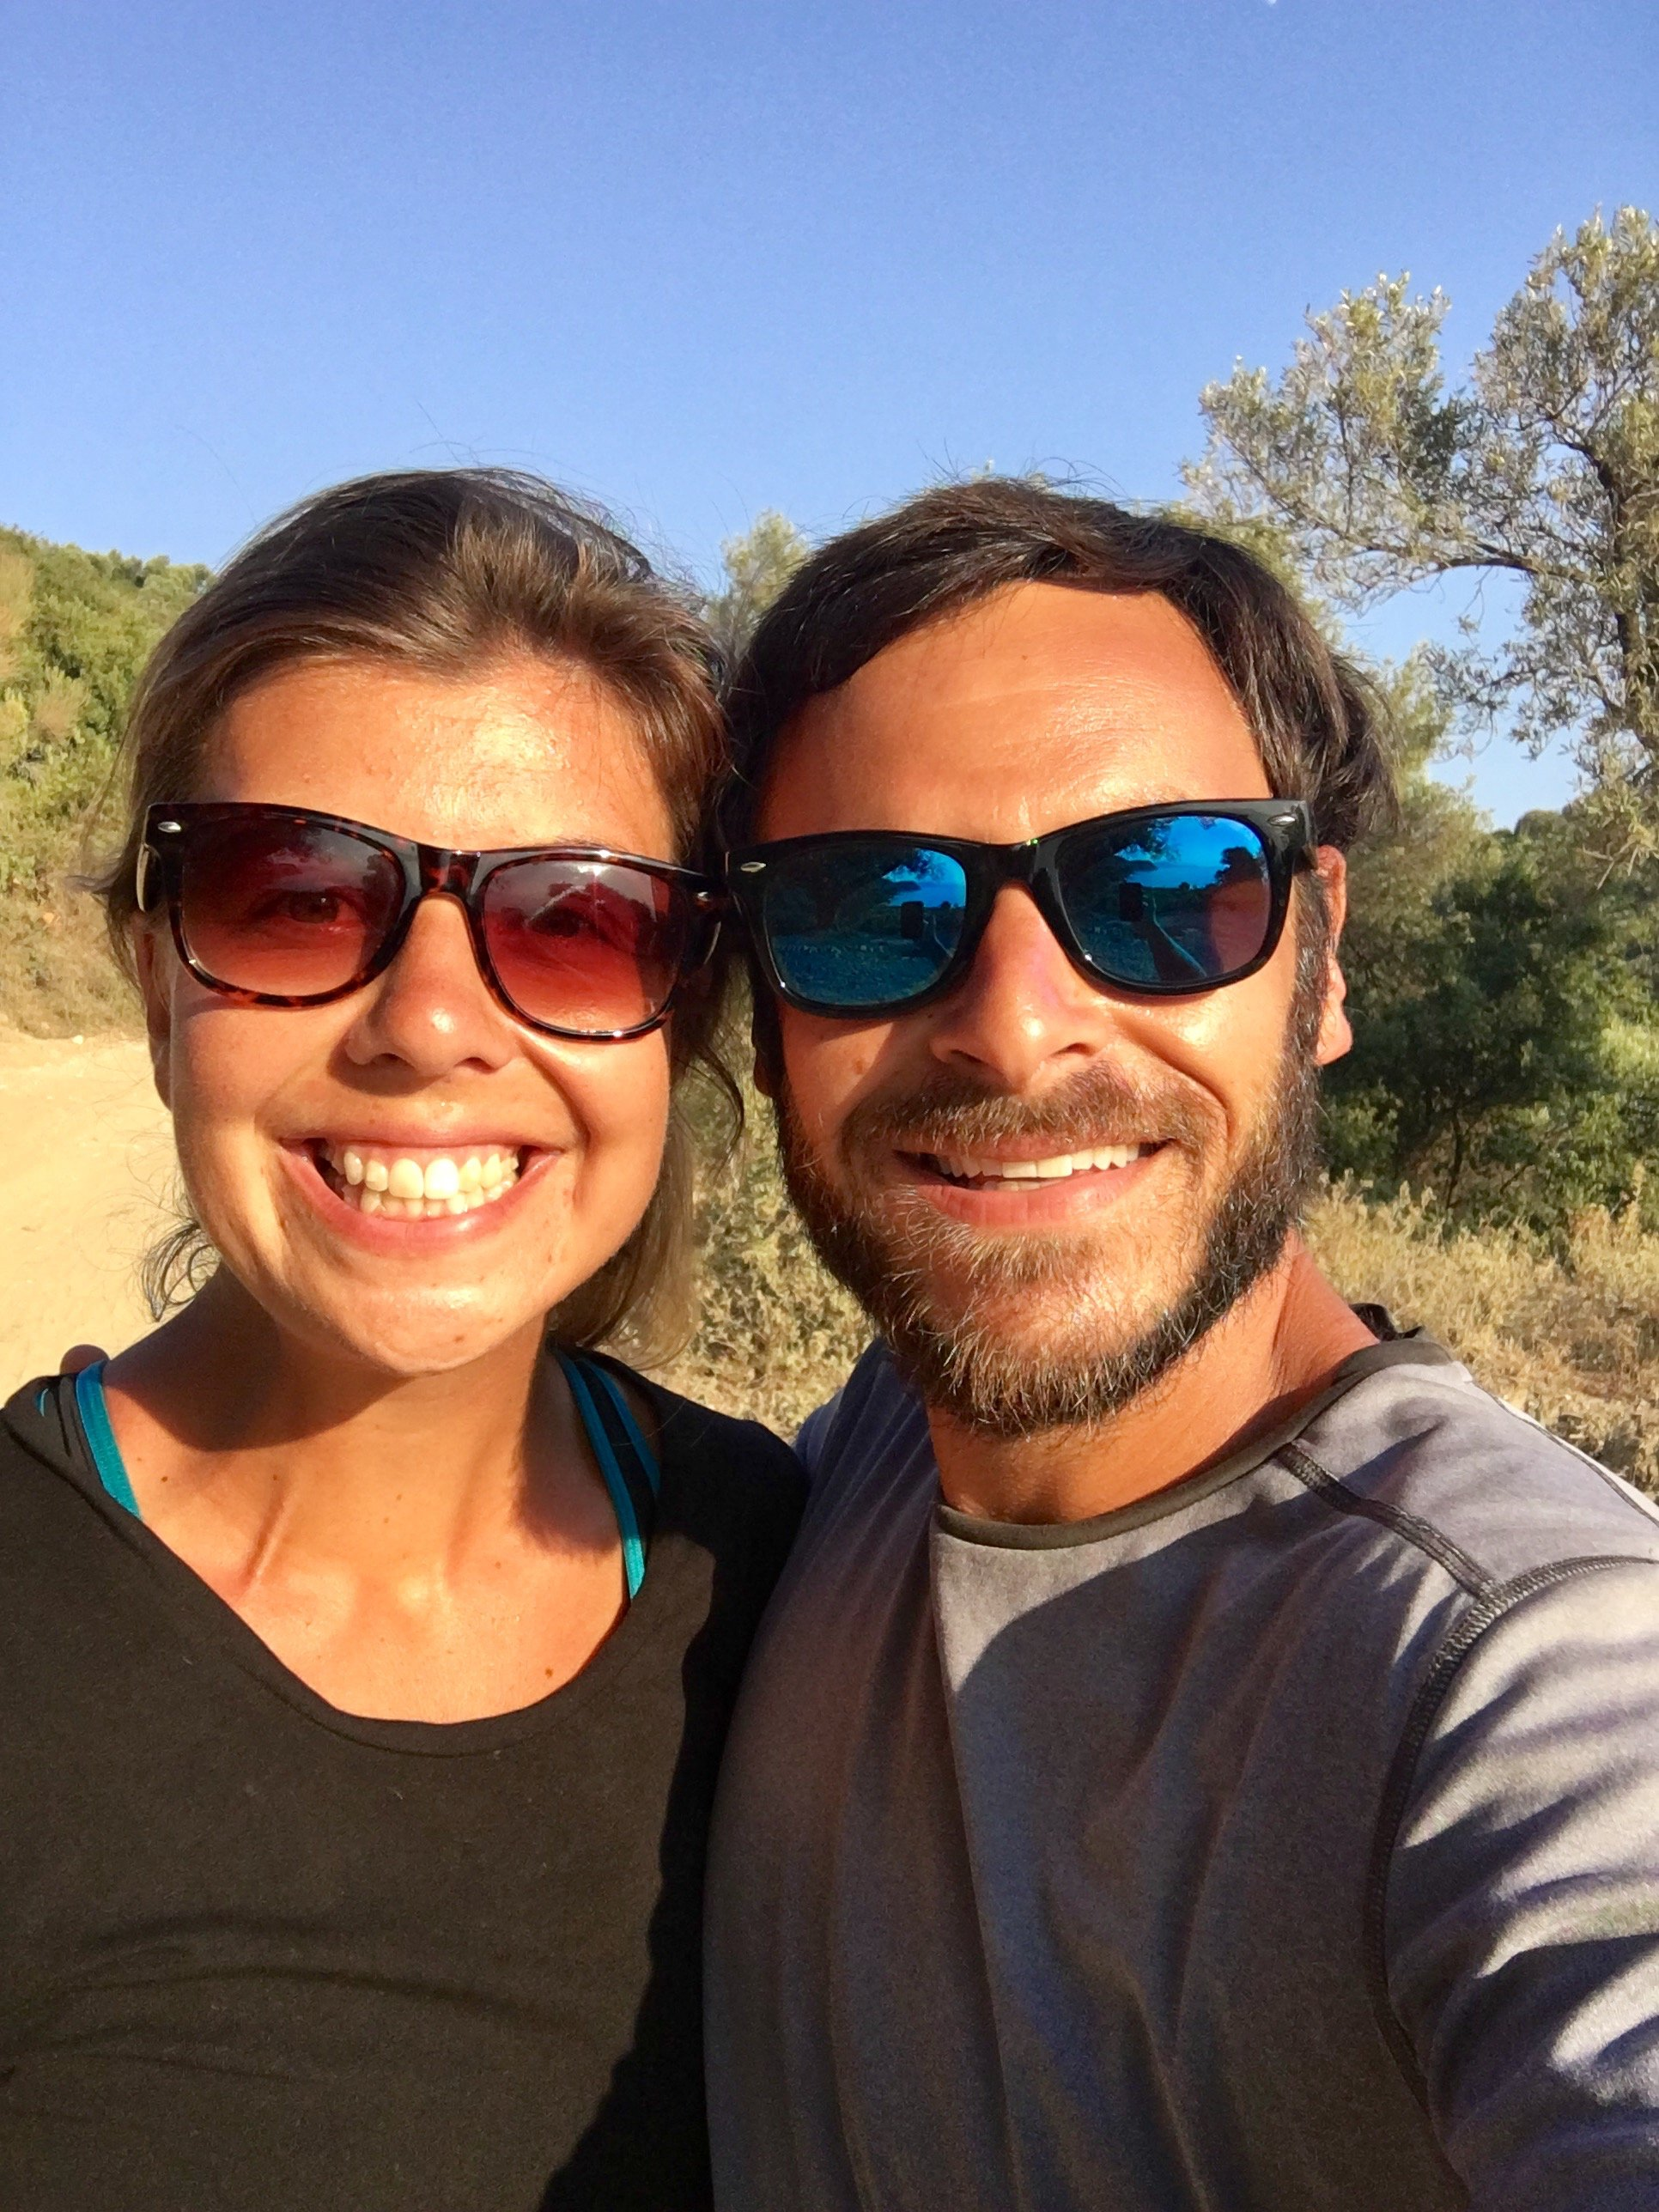 A happy couple on our road trip in Albania